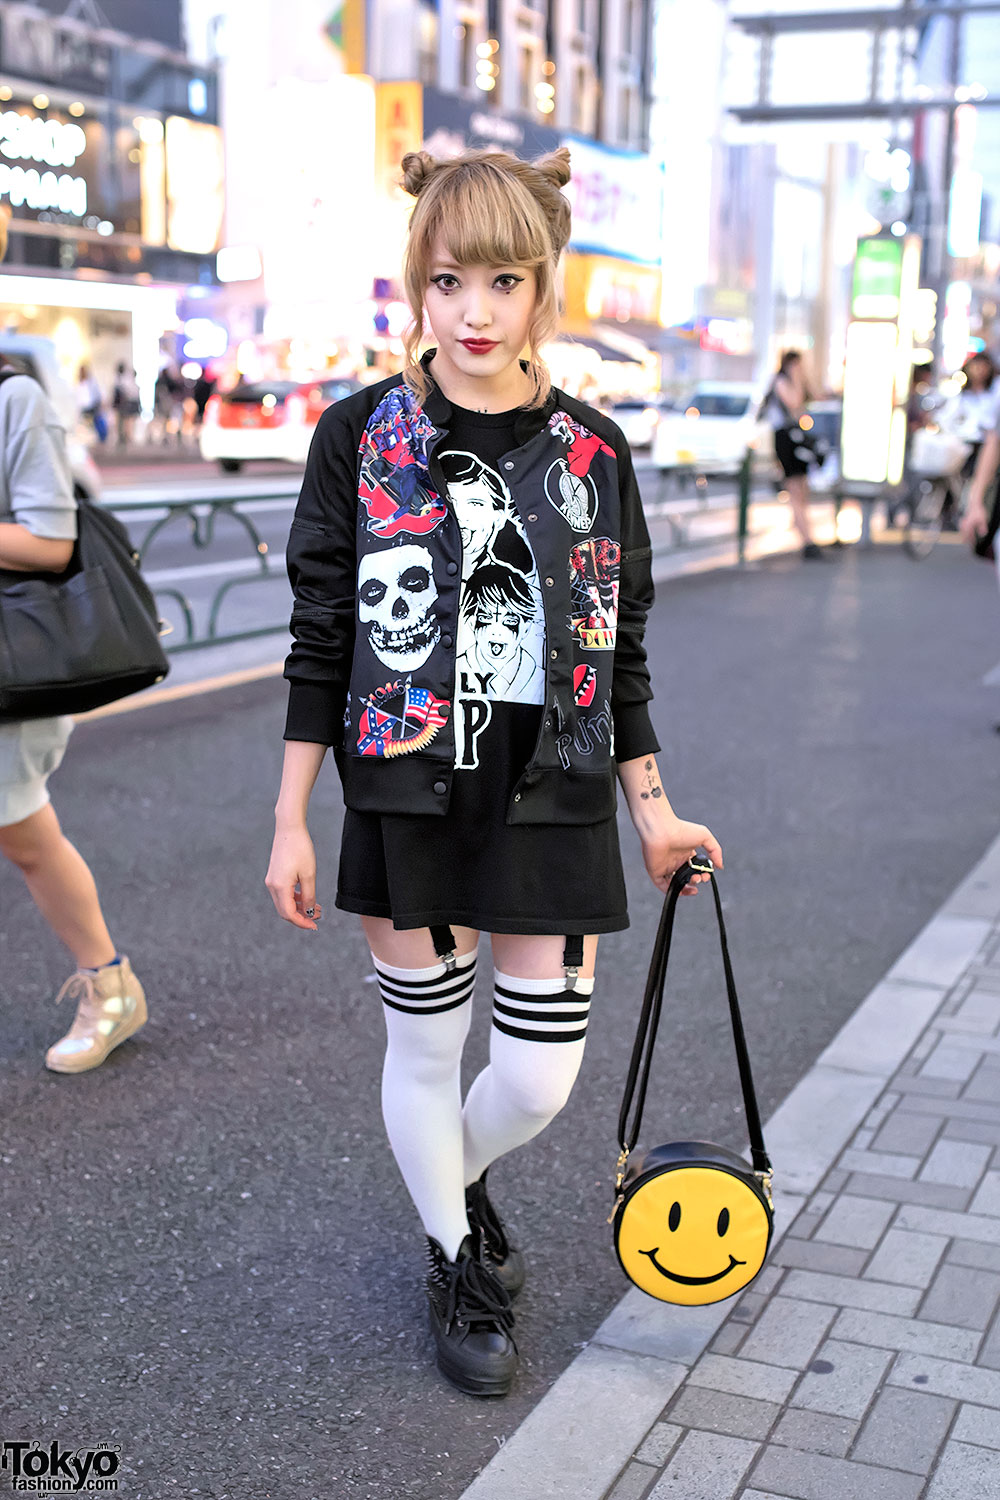 1c47d5ec4a4a Kobinai Punk Bomber, Spiked Sneakers & Smiley Face Purse in Harajuku